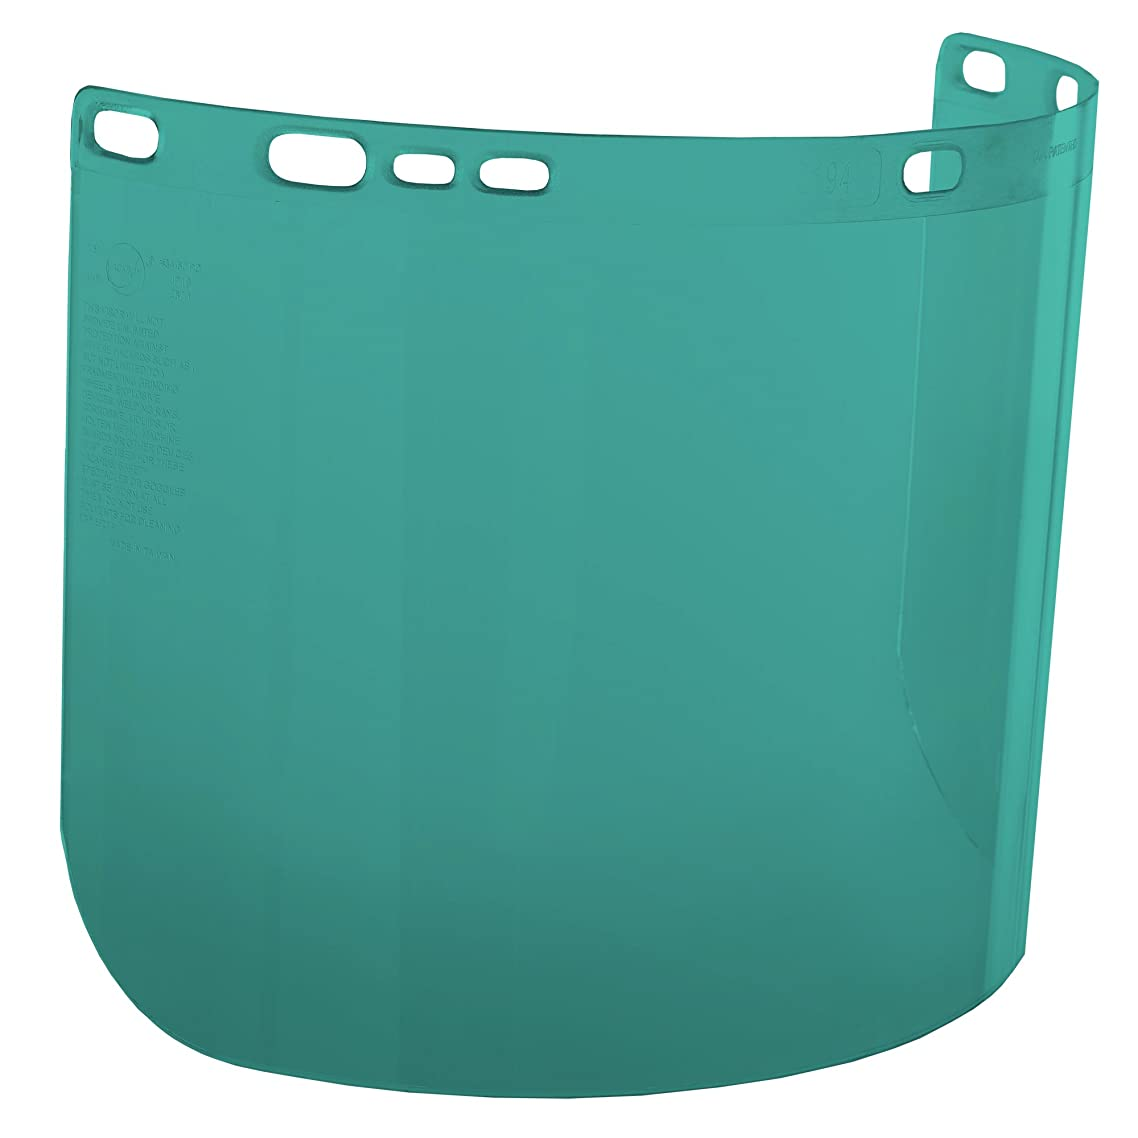 "Jackson Safety F20 High Impact Face Shield (29100), Polycarbonate, 8"" x 15.5"" x 0.04"", Dark Green, Face Protection, Unbound, 36 Shields / Case fizwxfpy01698801"